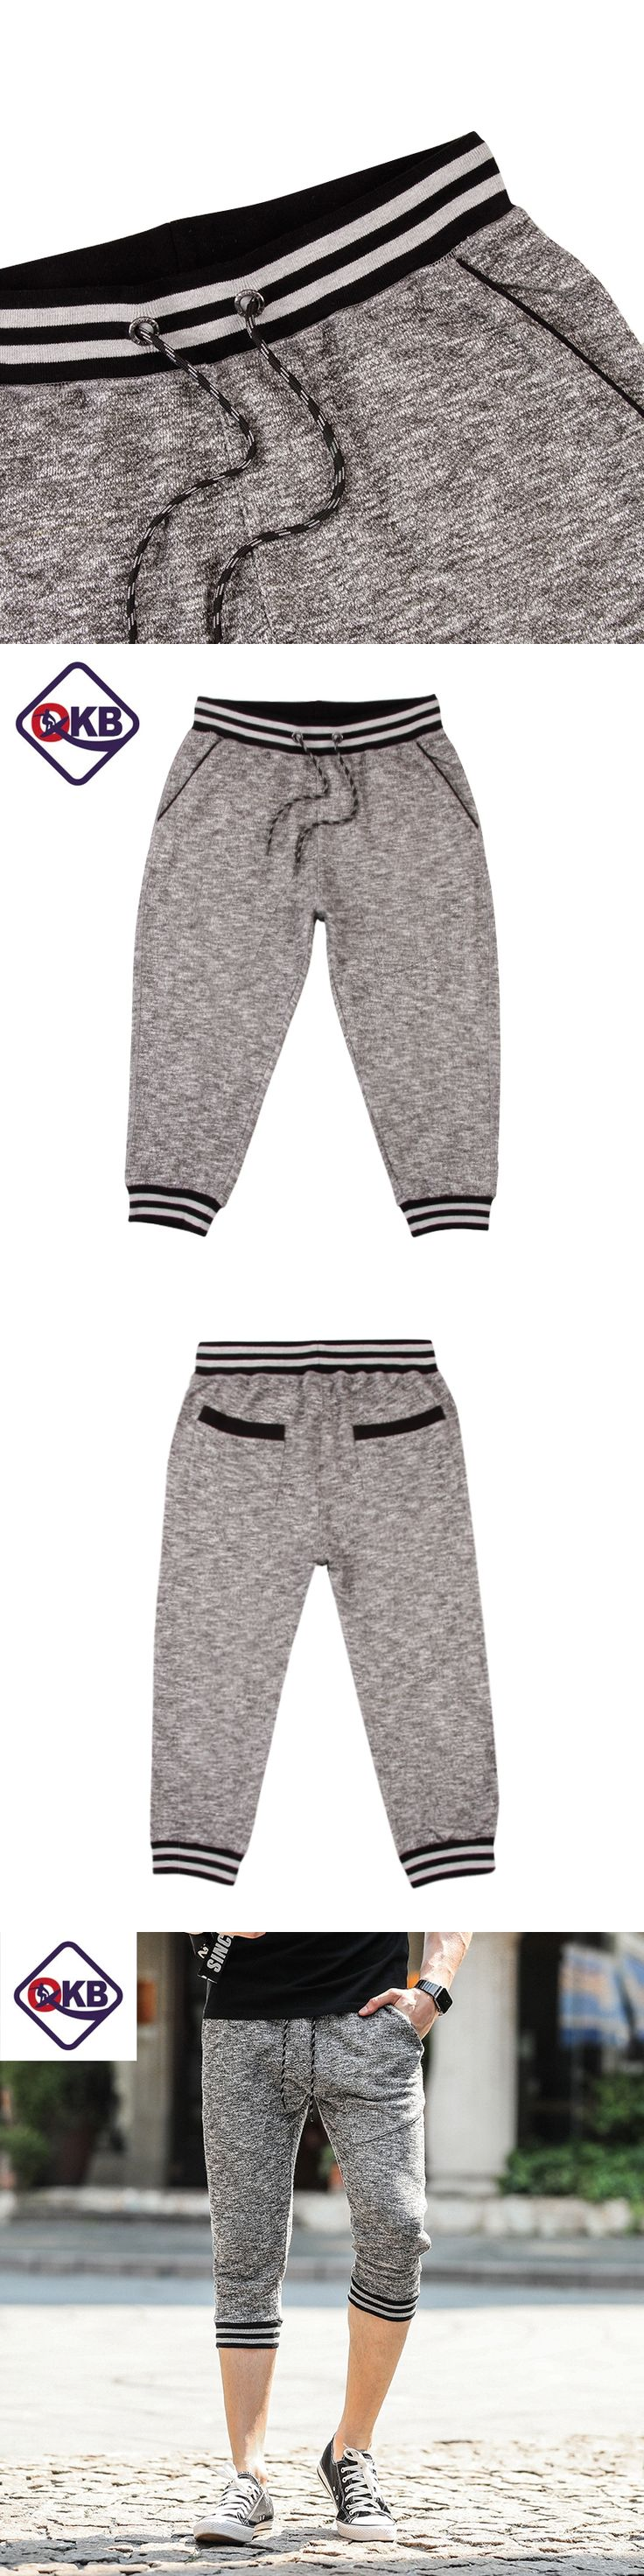 QIKERBONG 2017 Summer Casual Shorts Loose Knitted Bermuda Masculina Ventilate Elastic Waistband Pantalones Cortos Hombre Deporte